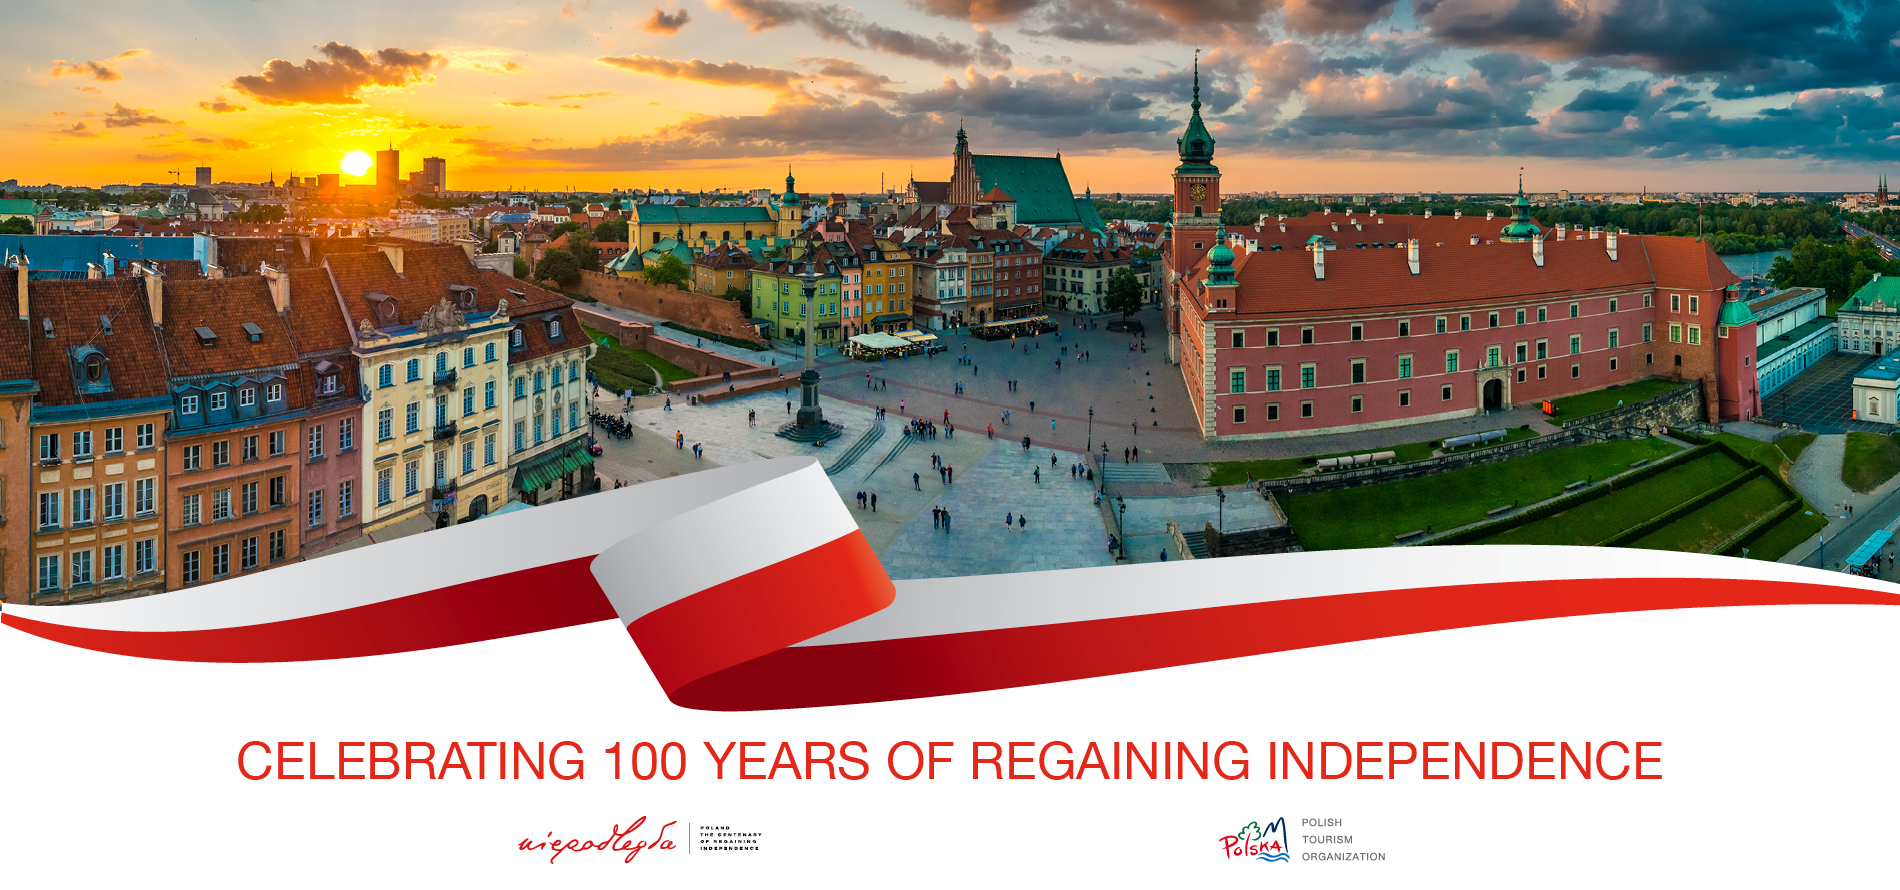 Poland is celebrating a 100th anniversary of regaining its Independence